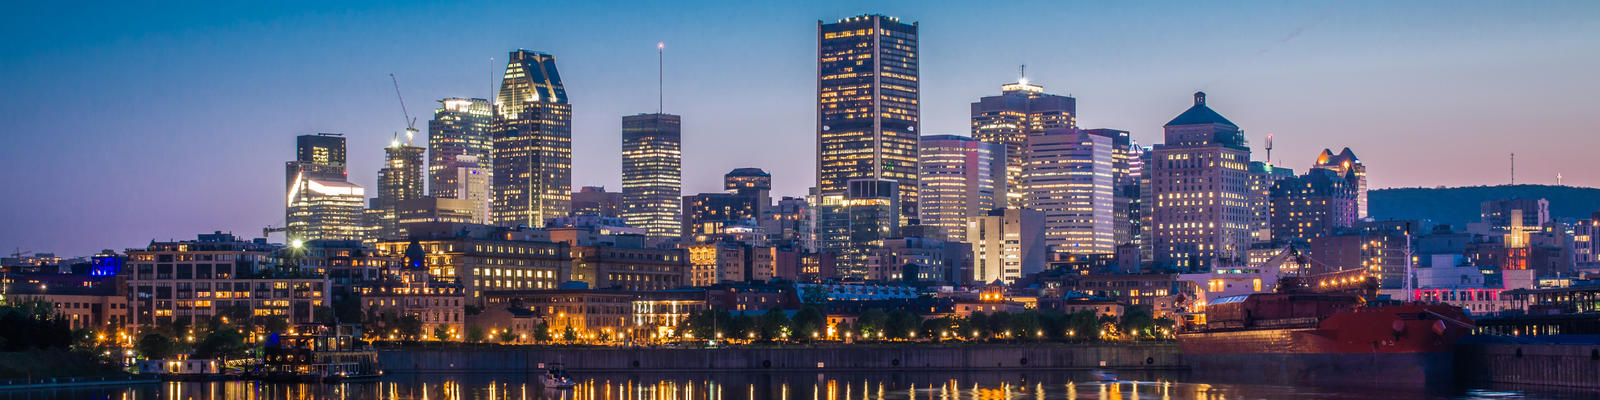 Montreal (Photo: Alex Papp/Shutterstock.com)